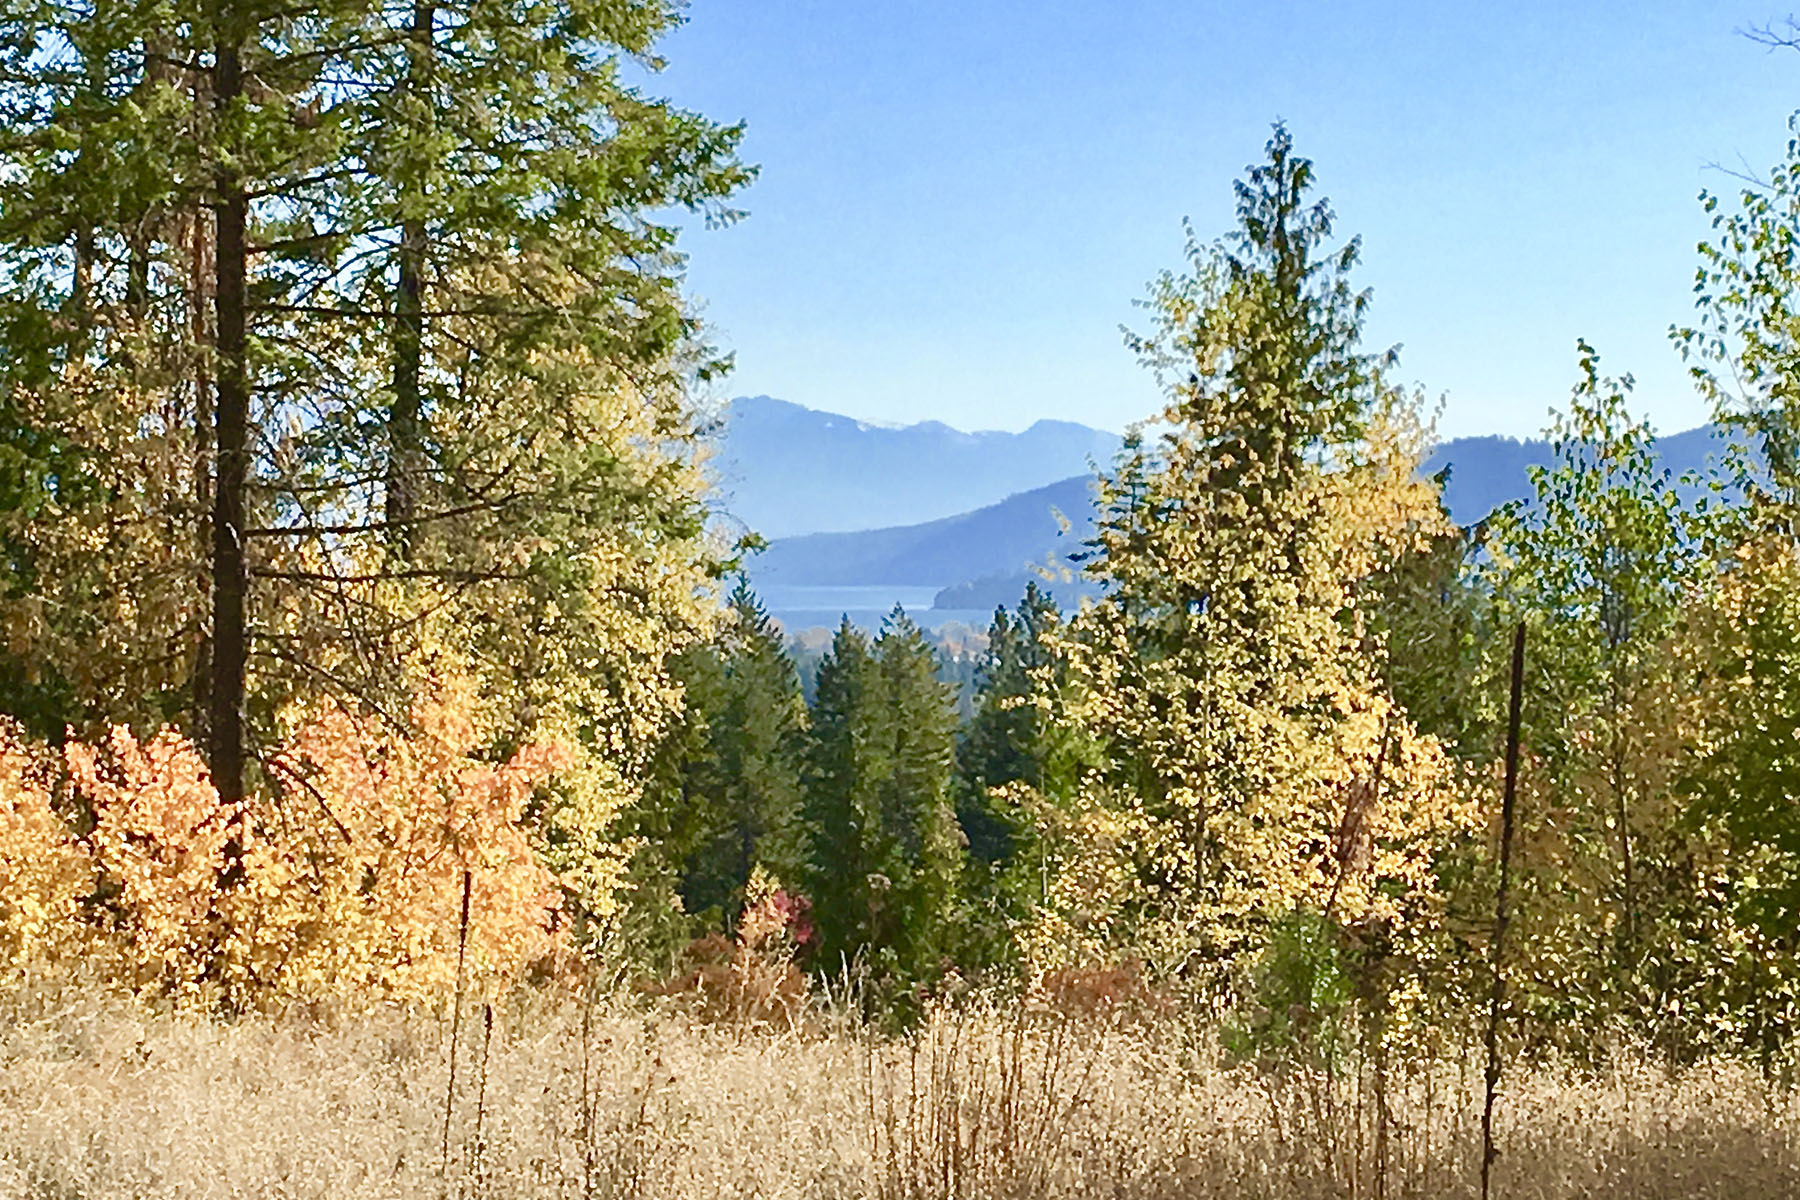 Land for Sale at Build Your Dream on Over an Acre With Views 25 Mariposa Ct Sandpoint, Idaho 83864 United States